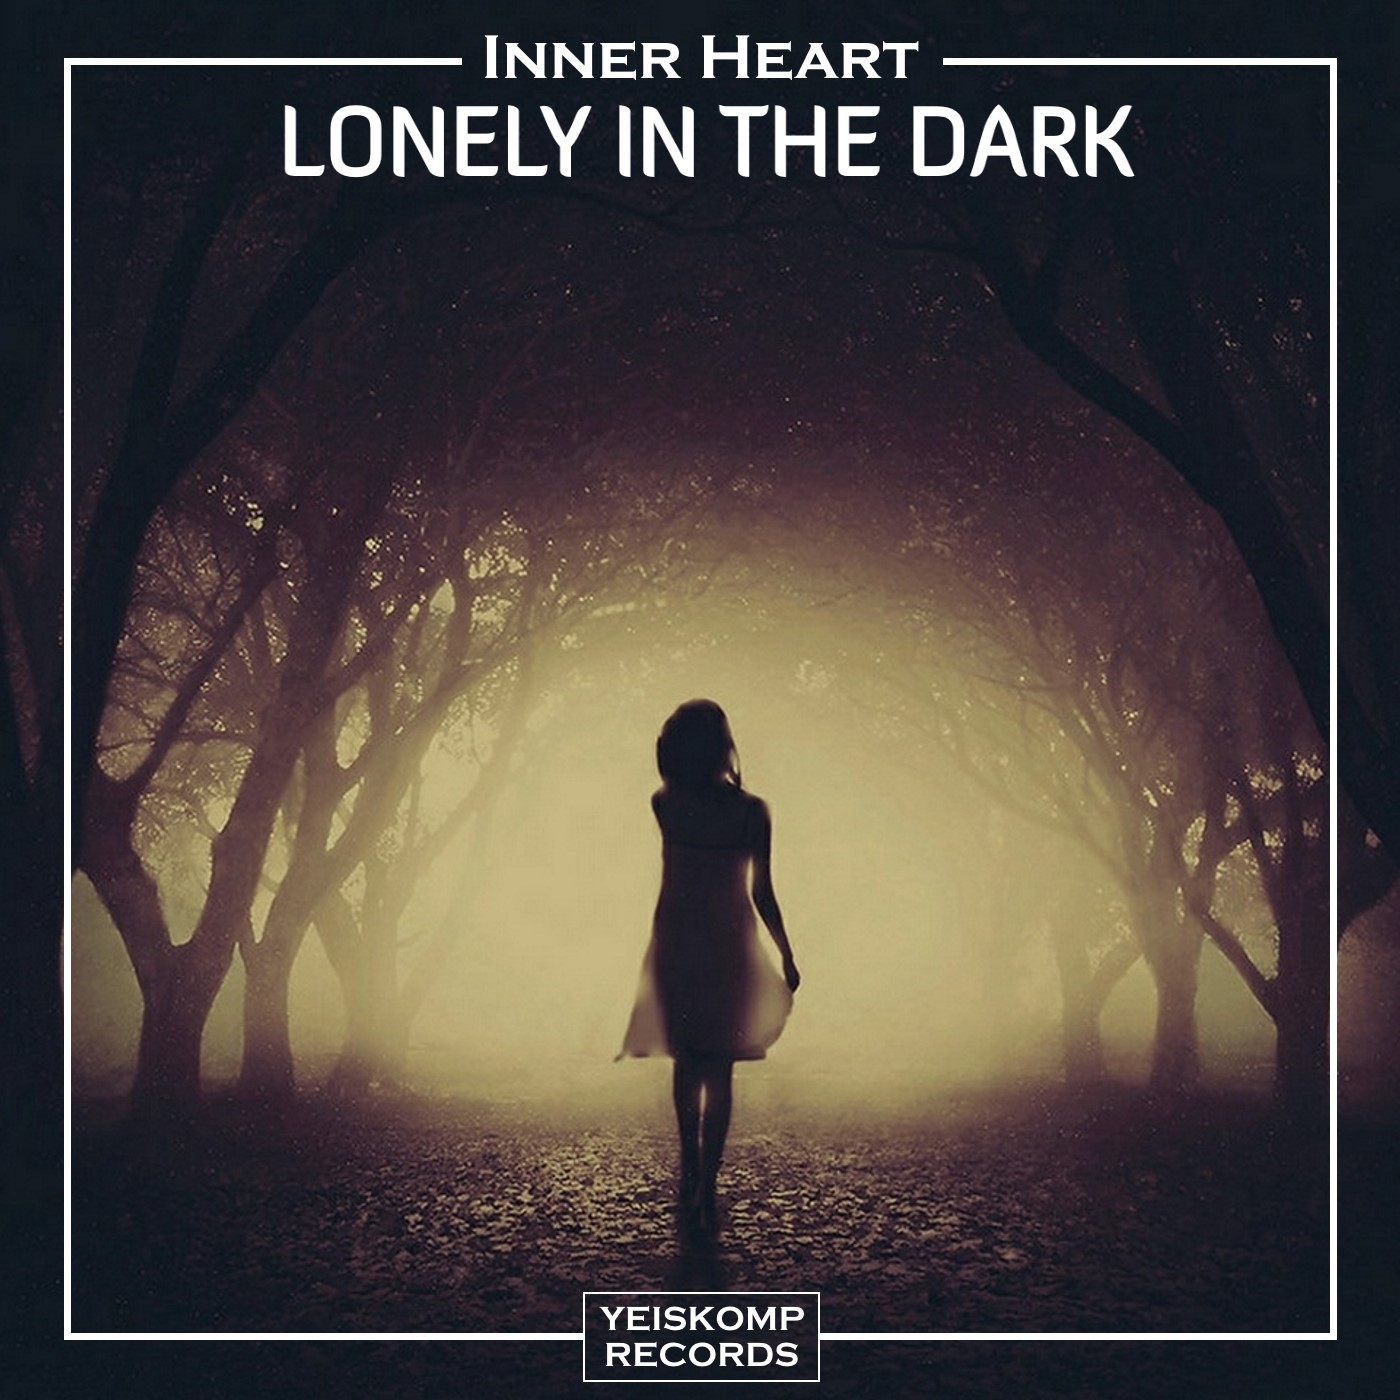 Inner Heart - Lonely In The Dark (Original Mix)